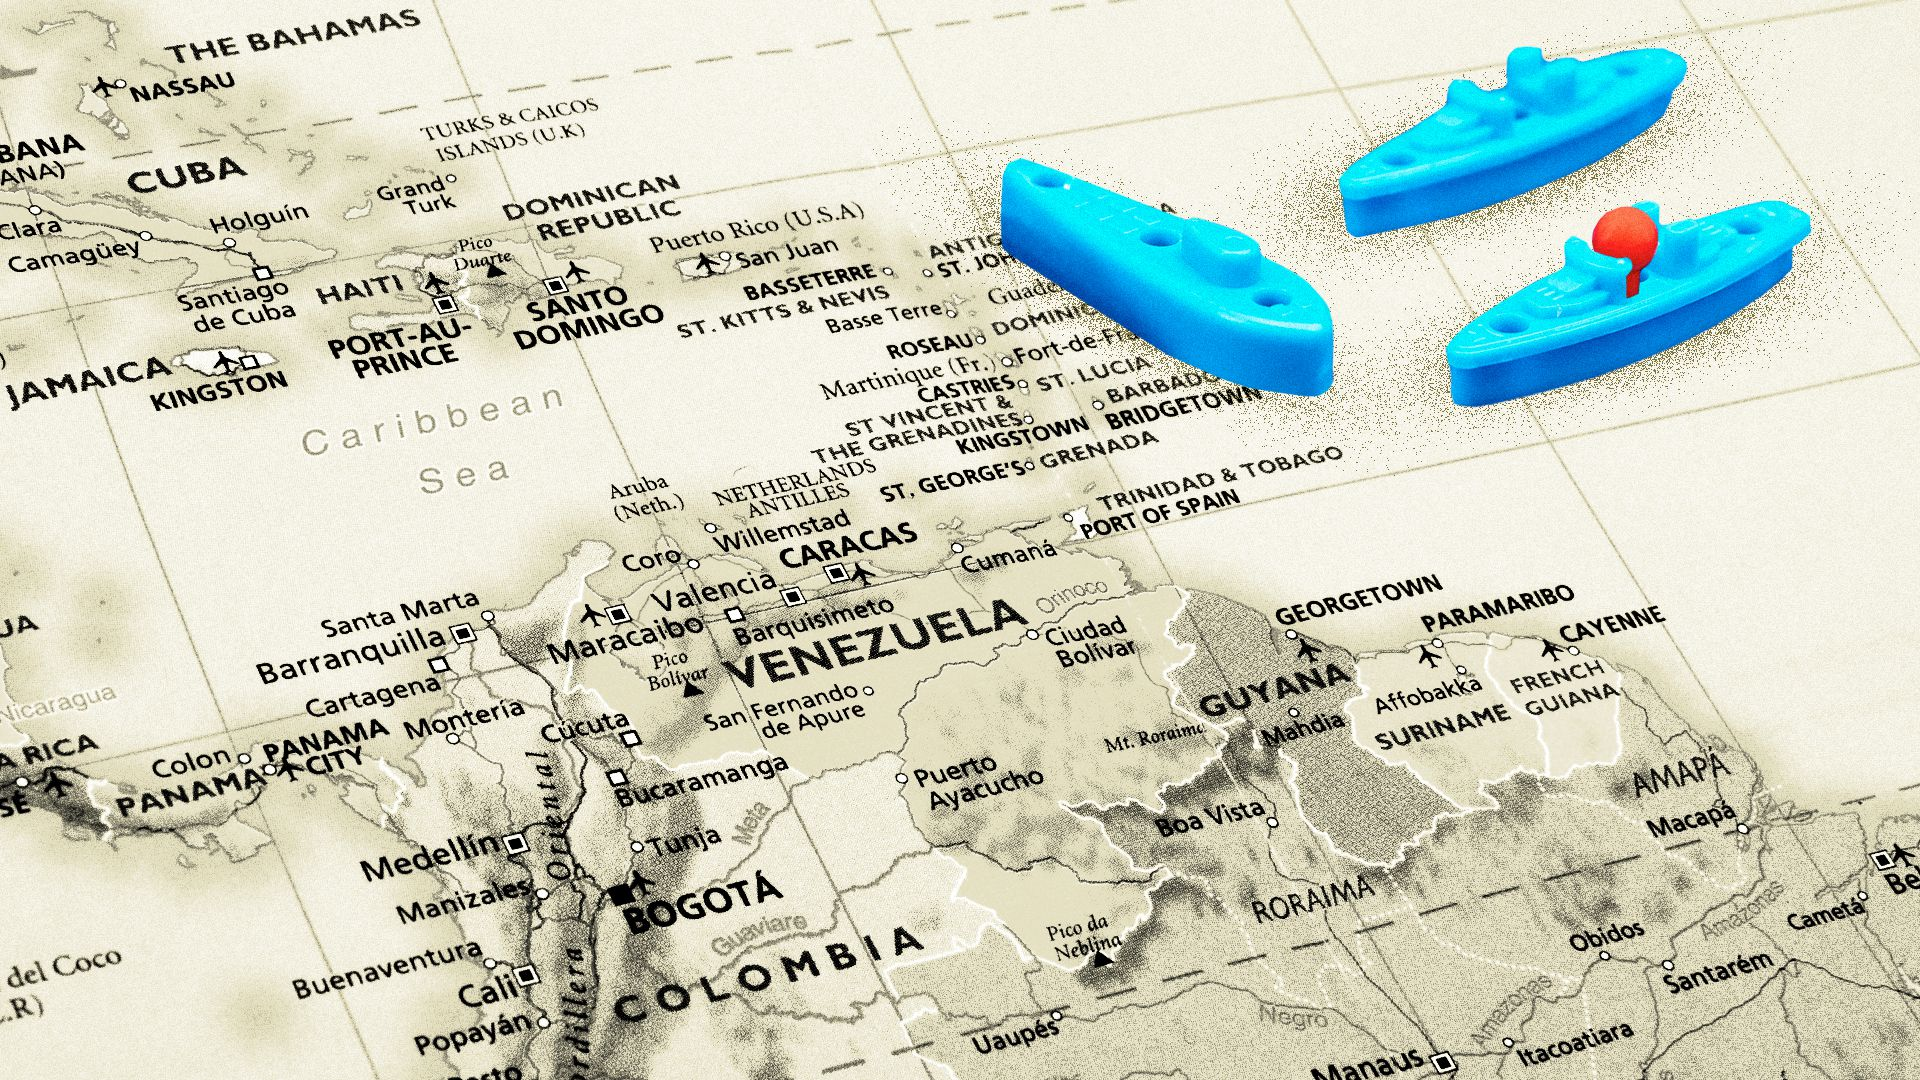 Illustration of a map with Battle Ship game toy pieces placed near Venezuela.